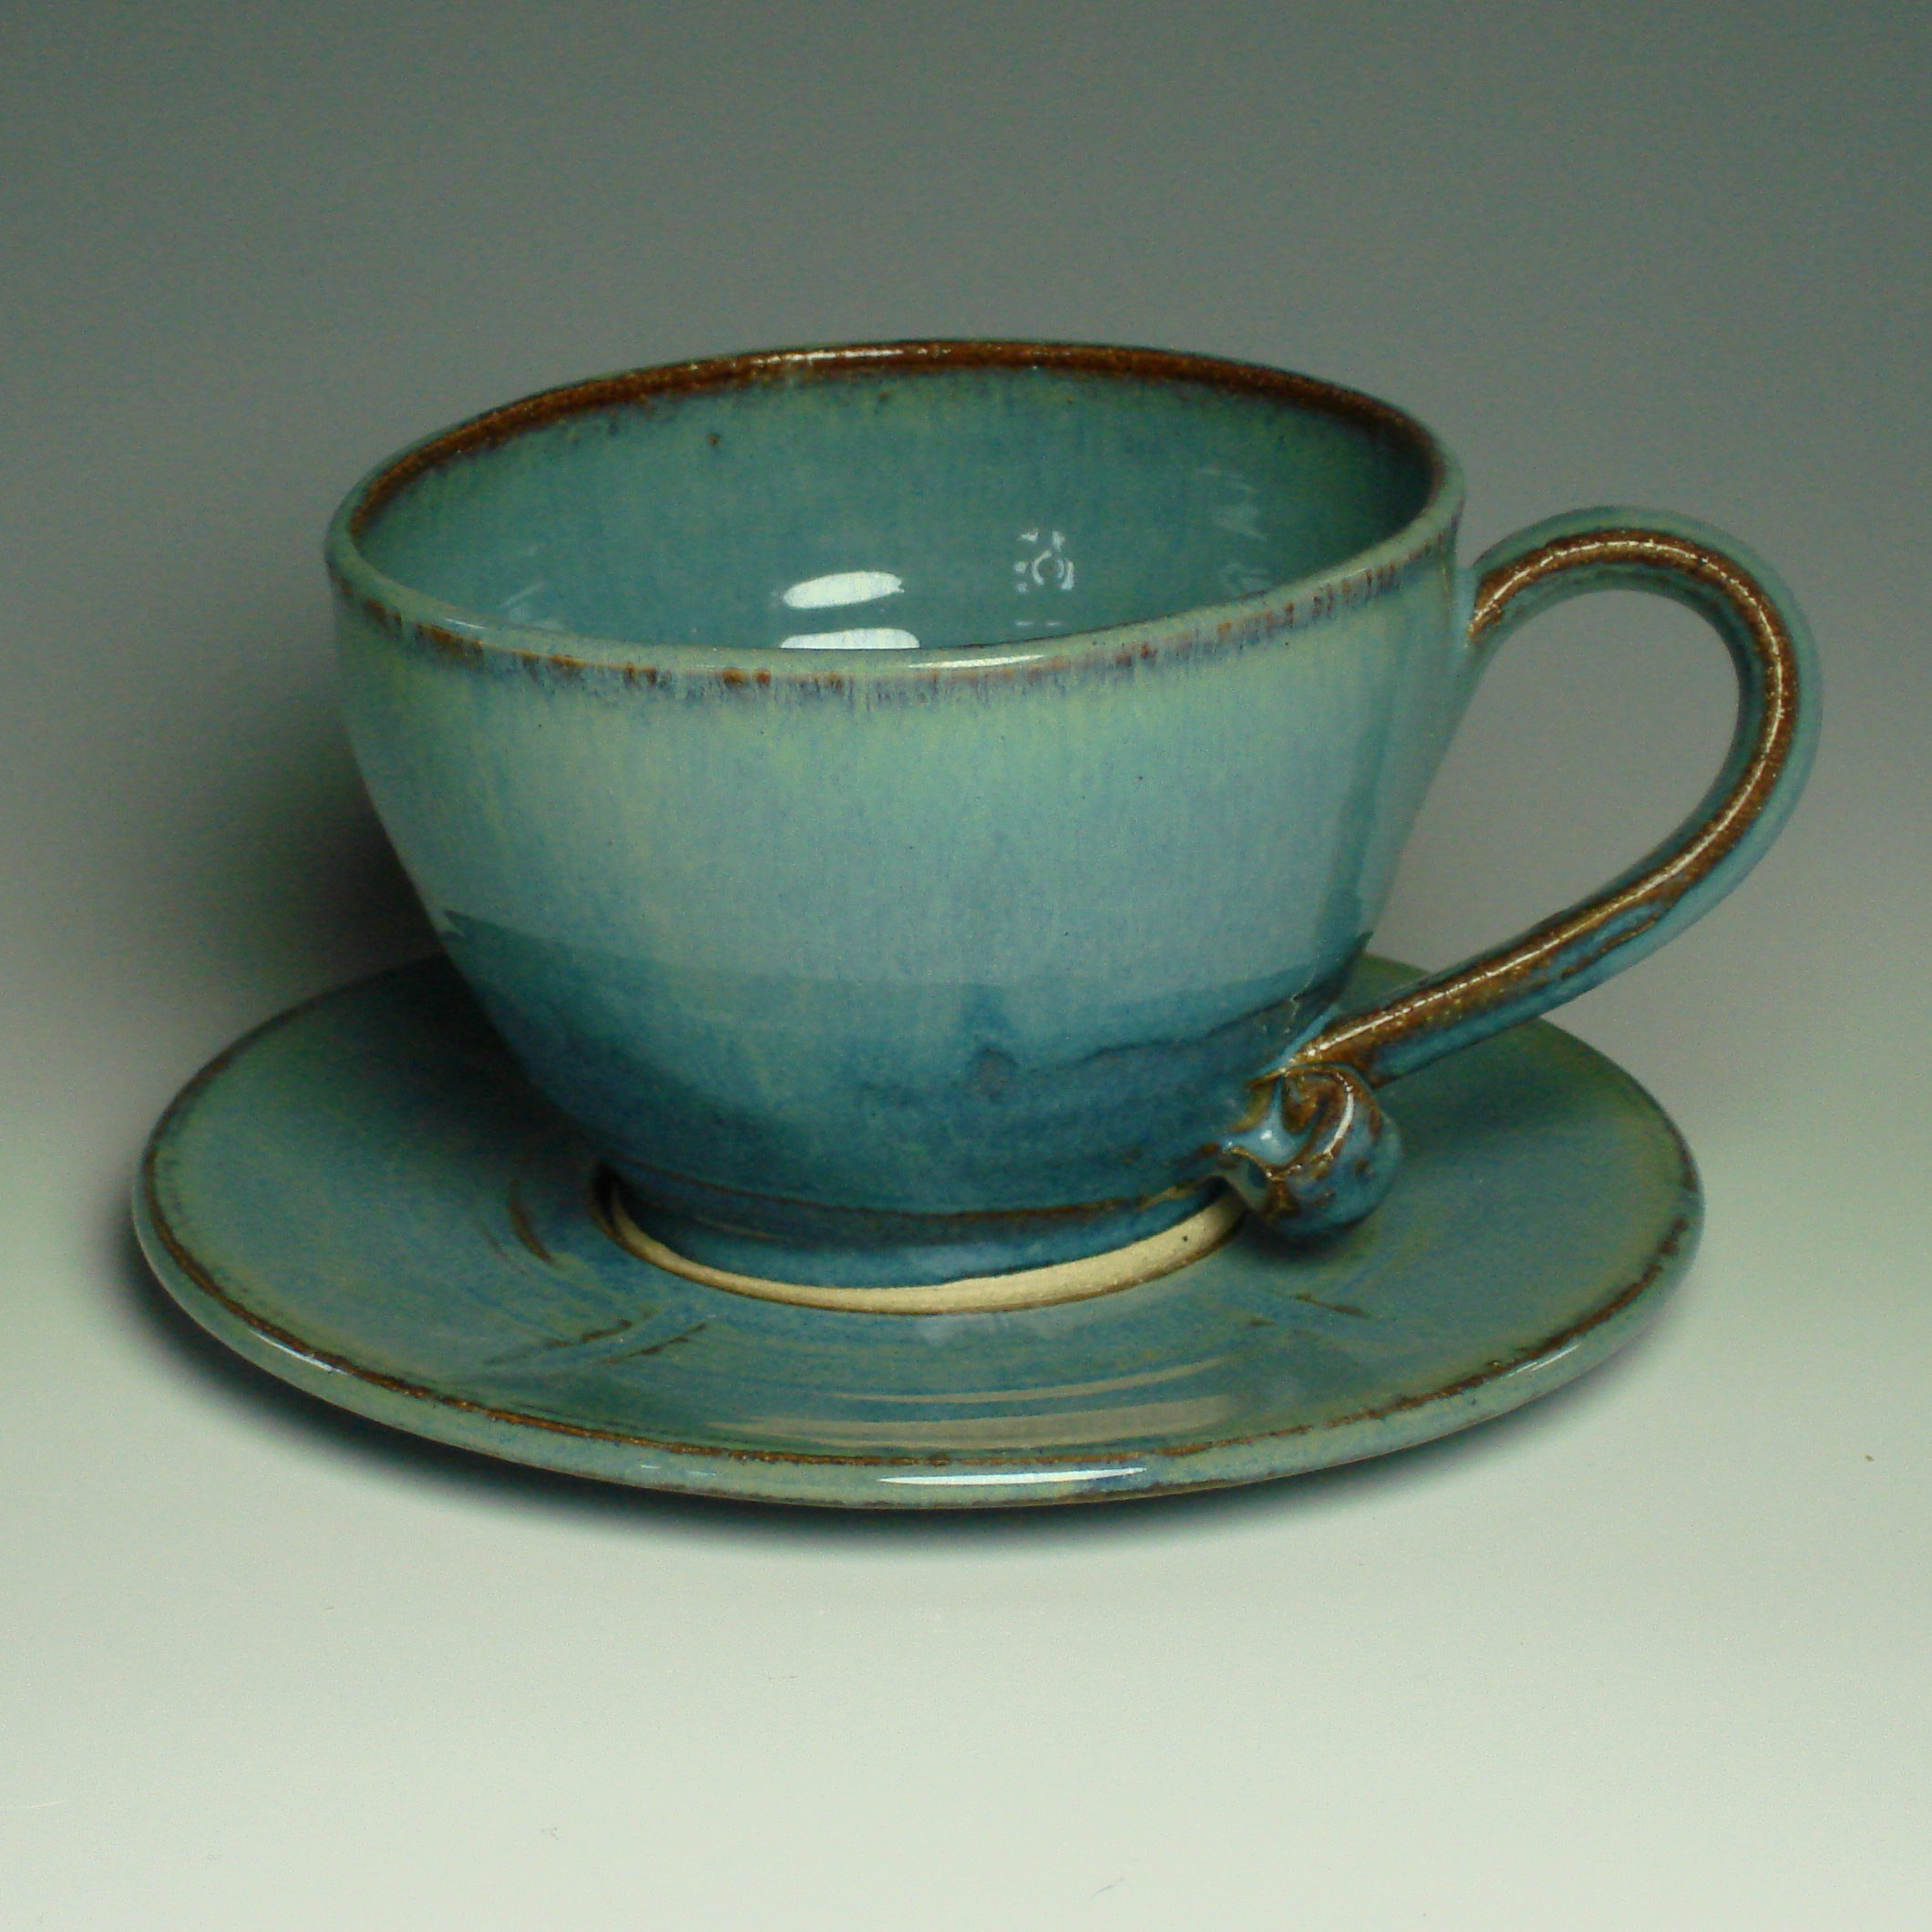 Cappucino Cup and Saucer - Summer blue